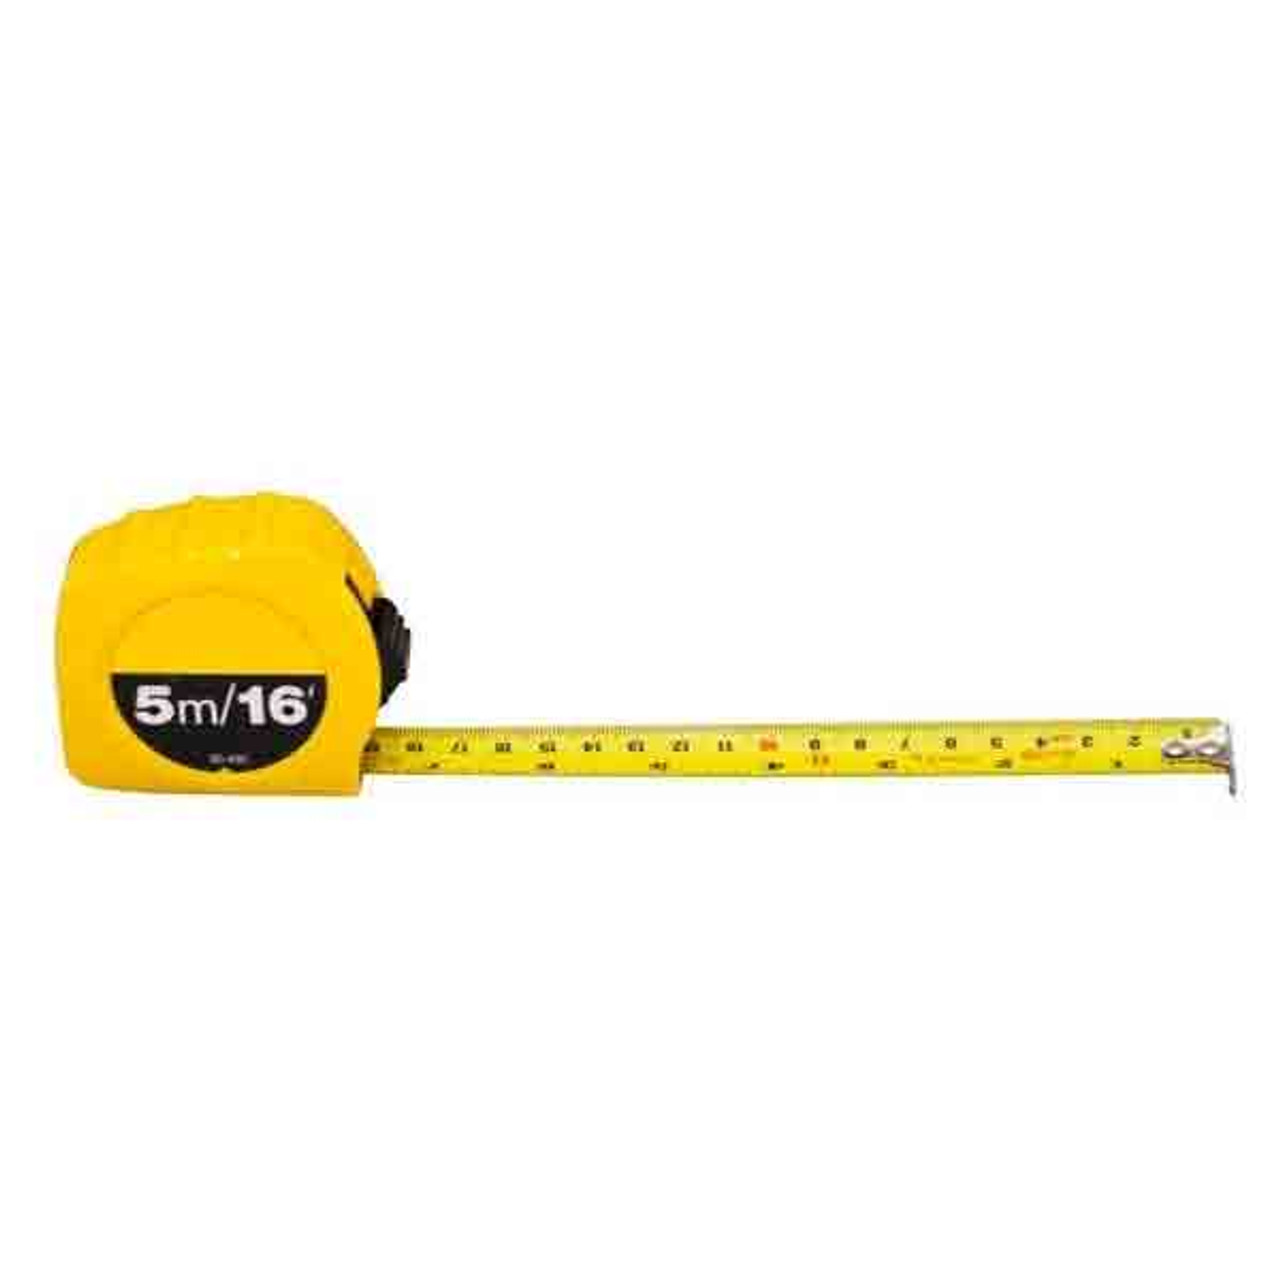 Tape Measure Test >> 16 Ft Tape Measure 5 M Or 16 Foot Tape Measure With Retractable